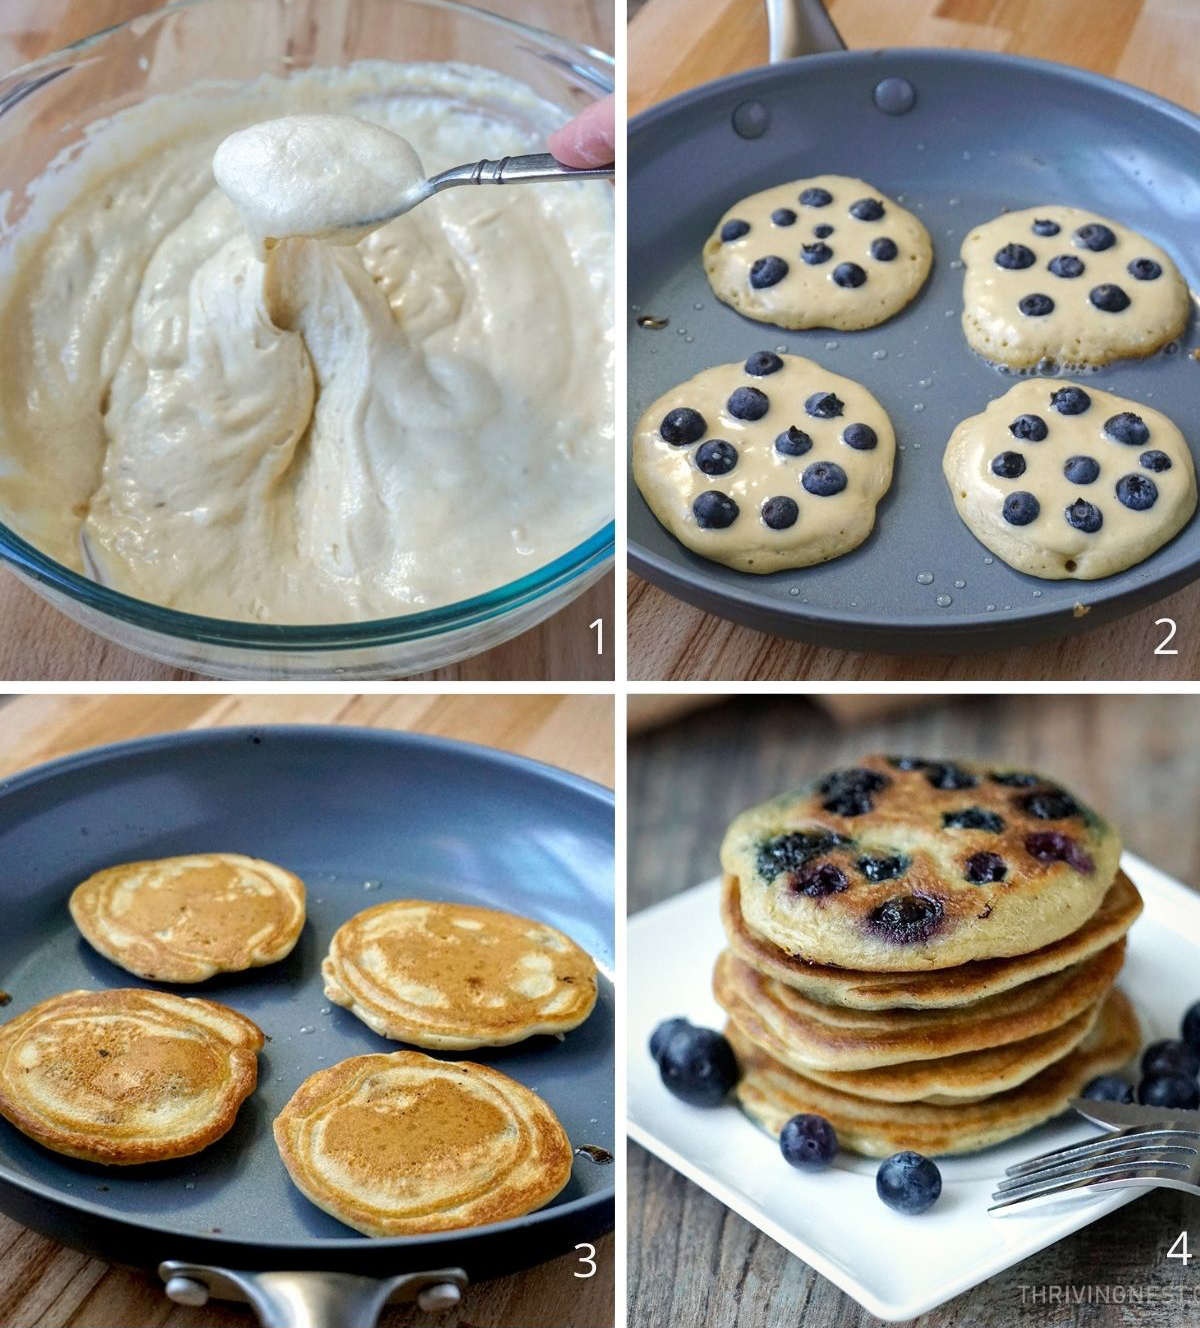 Process shots how to cook blueberry pancakes in a pan.